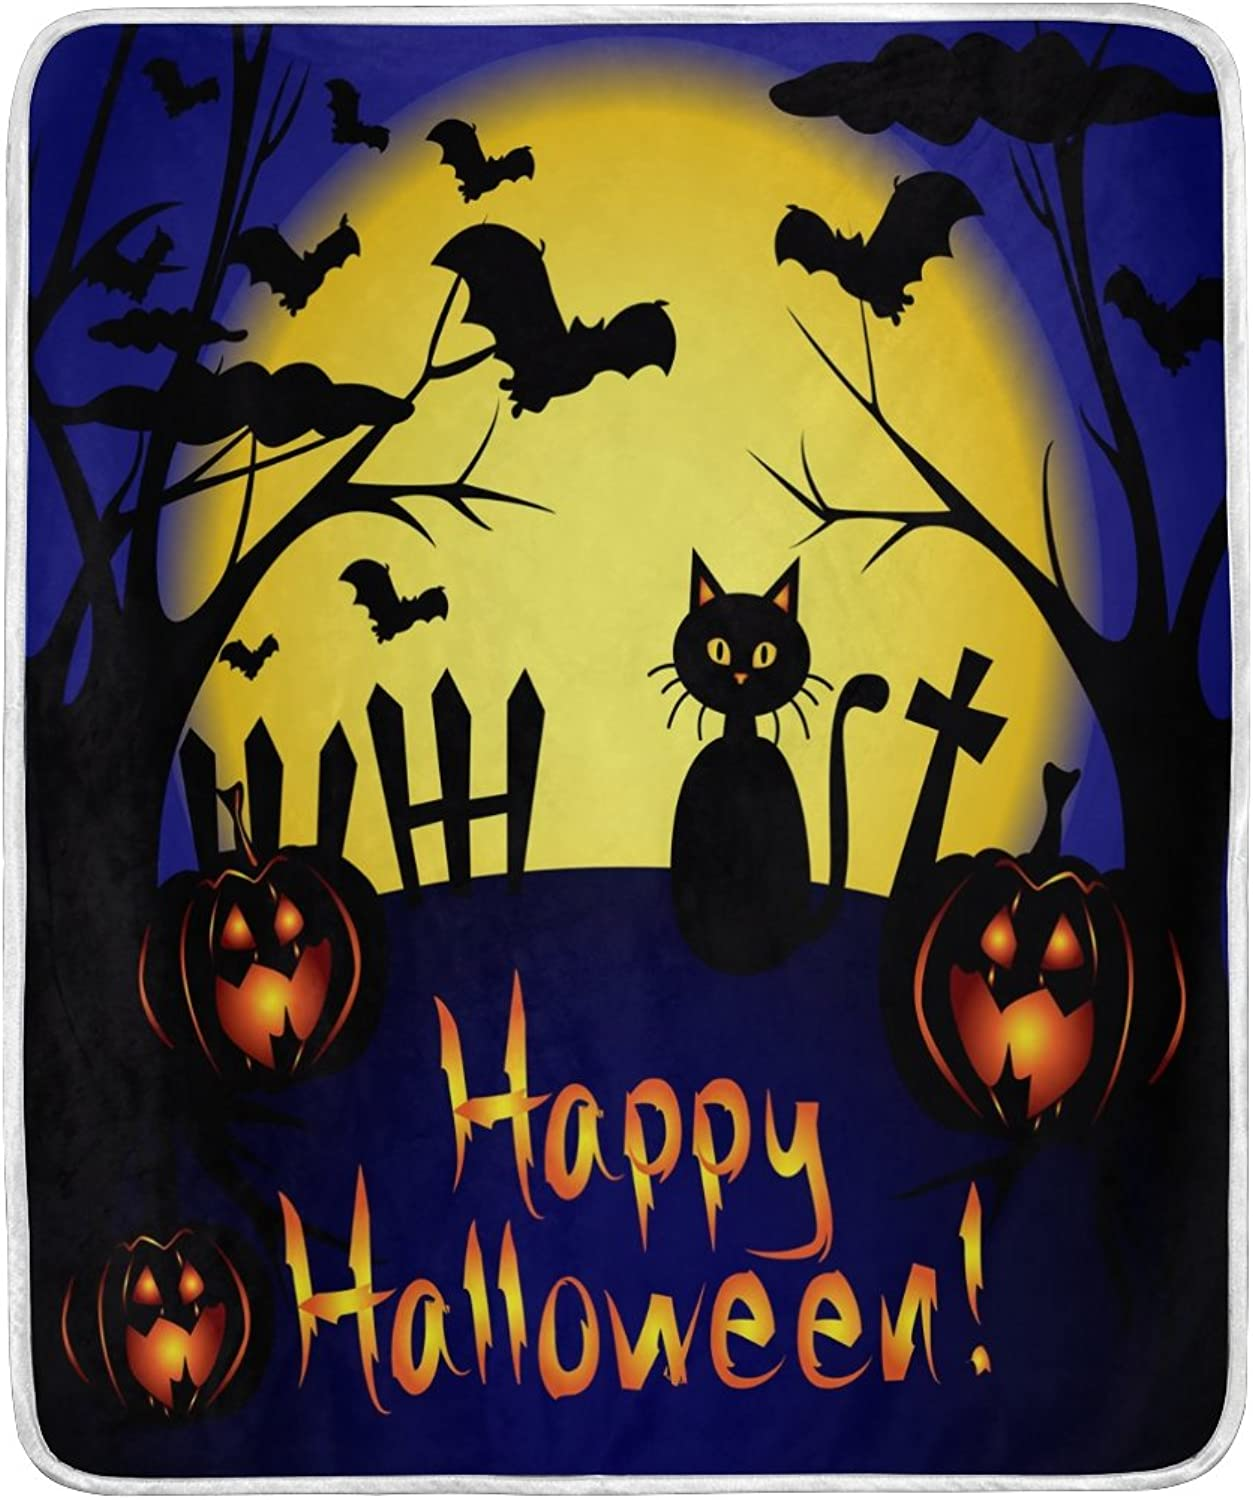 ALAZA Home Decor Happy Halloween Night Cat Moon Pumpkin Soft Warm Blanket for Bed Couch Sofa Lightweight Travelling Camping 60 x 50 inch Throw Size for Kids Boys Girls